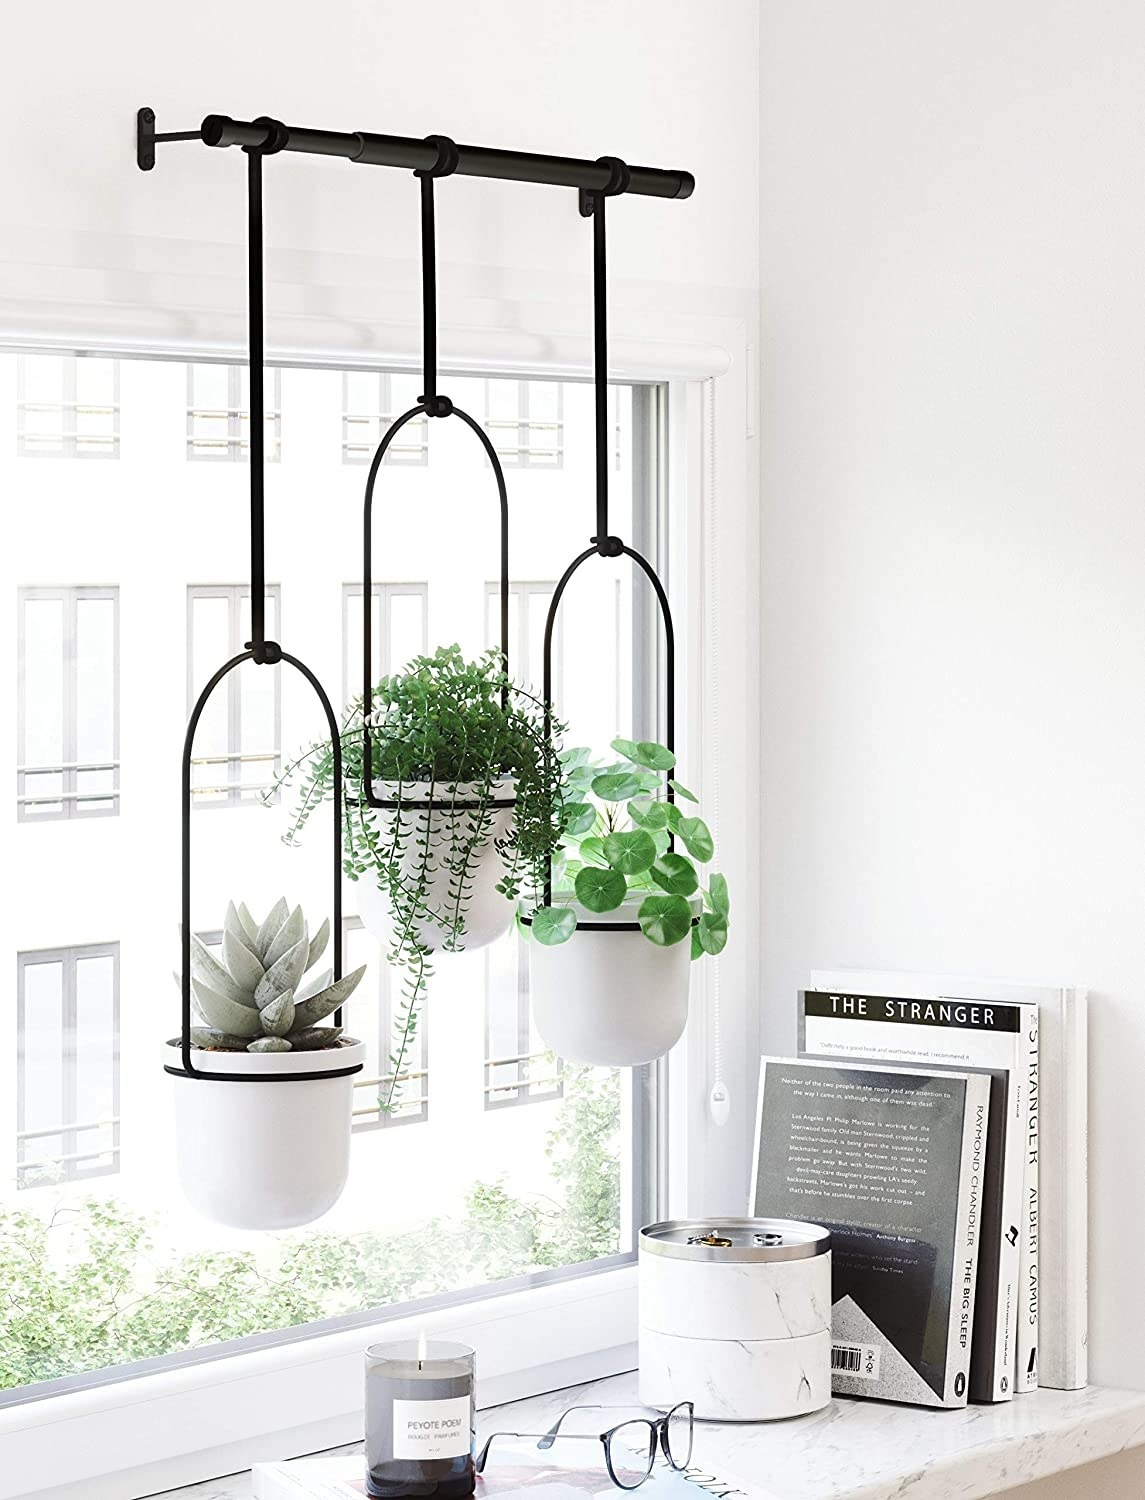 three white planters held up by a black bar